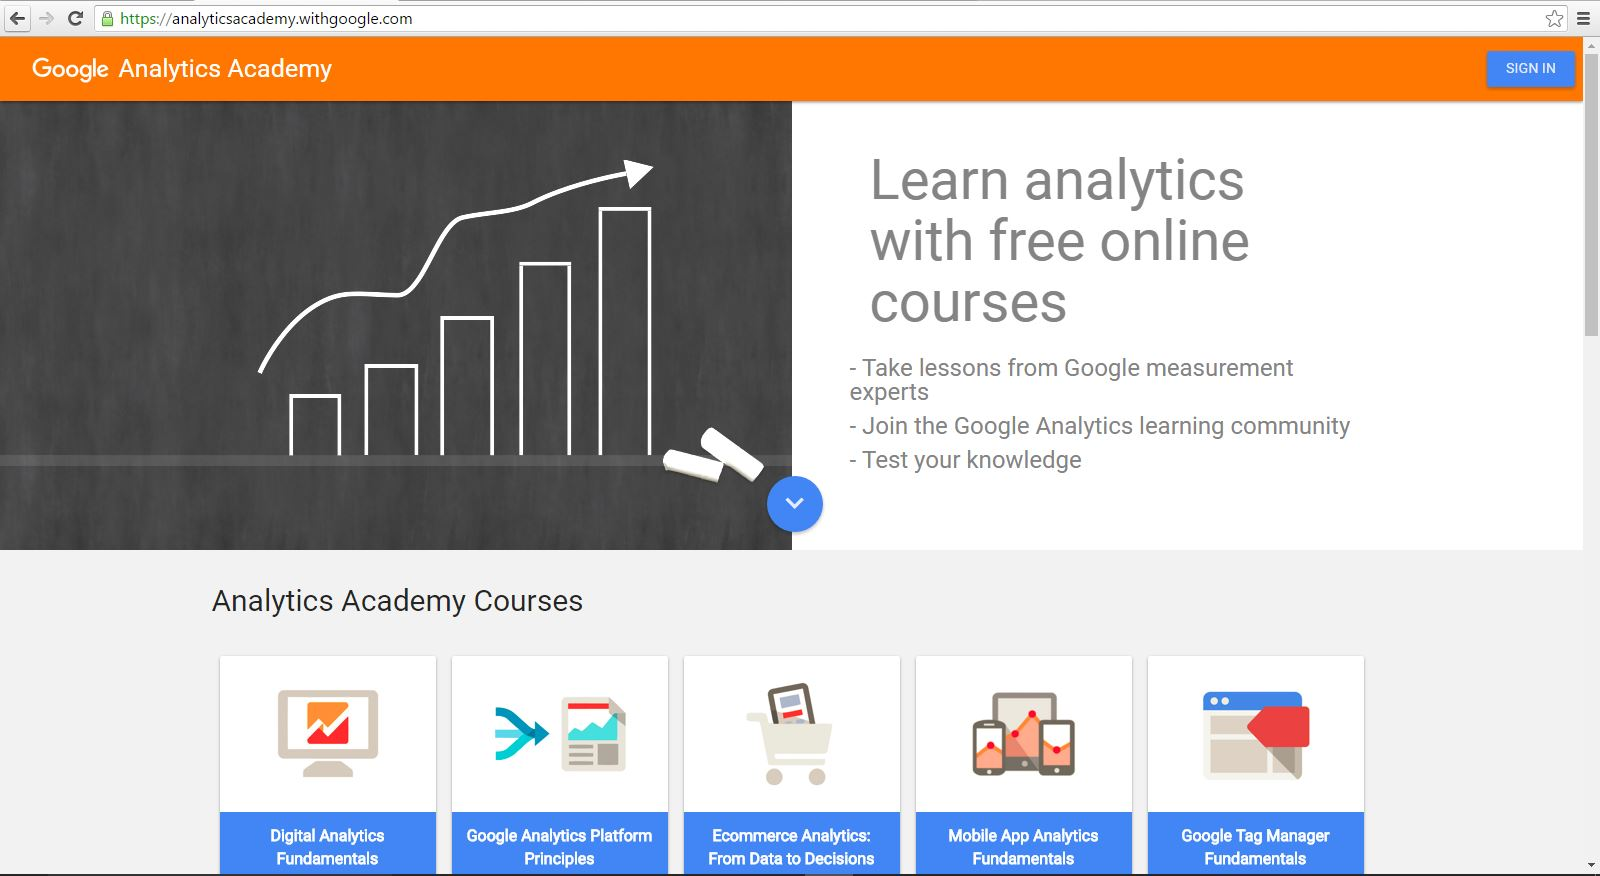 GoogleAnalytics_techskills.jpg